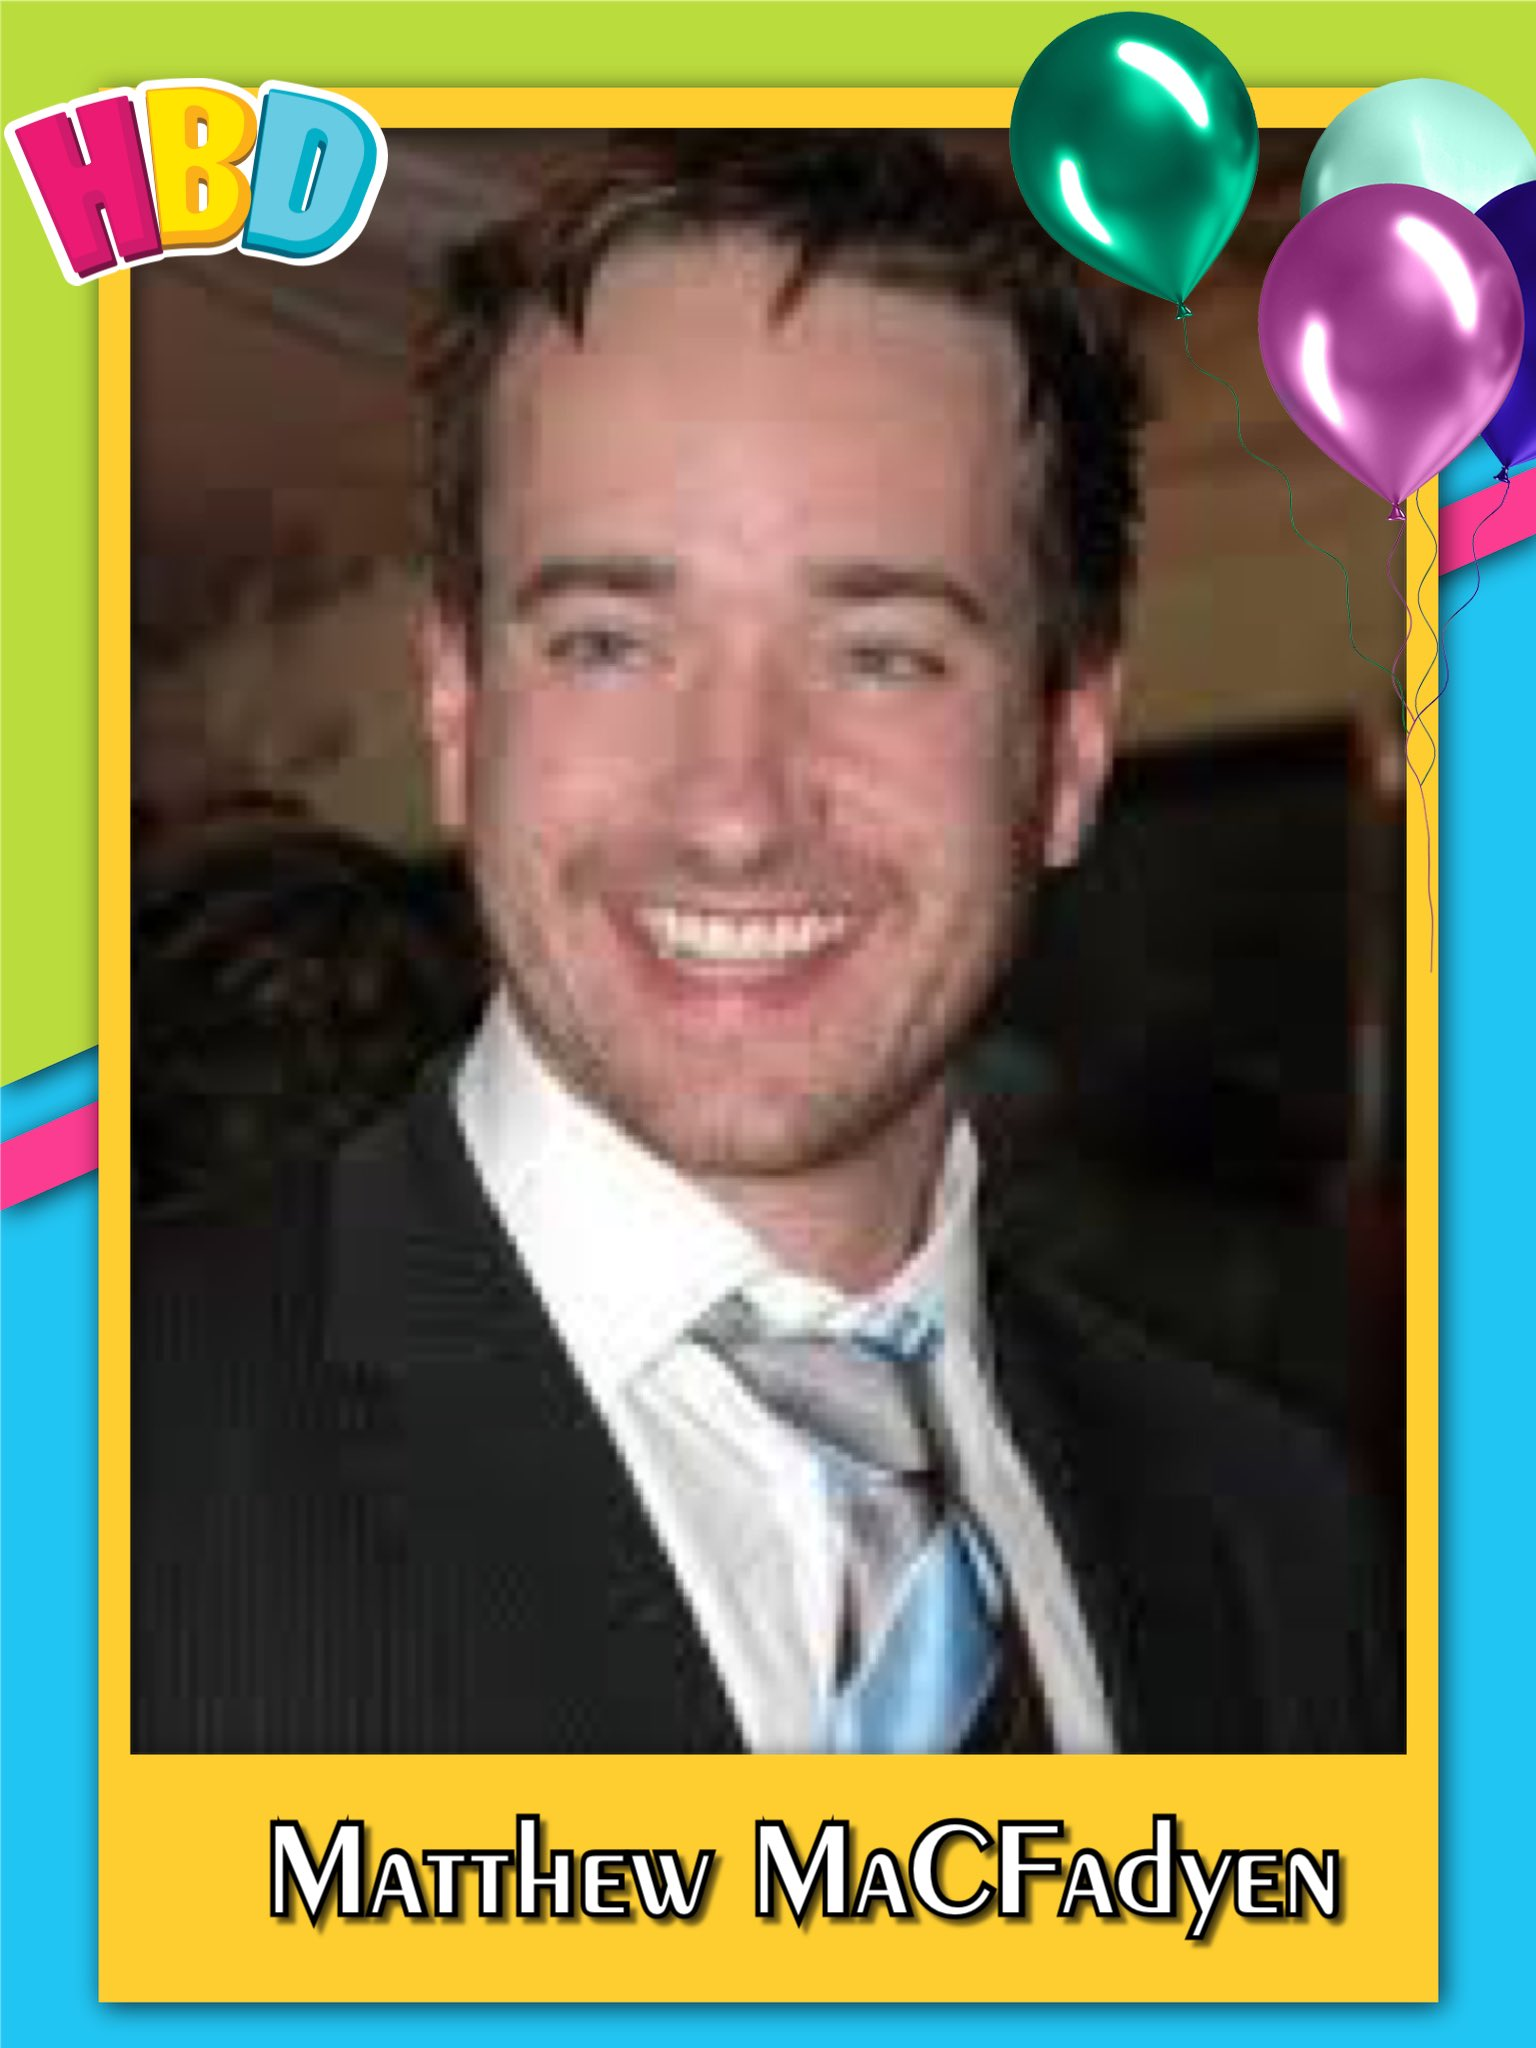 Happy Birthday Matthew MaCfadyen, George Wendt, Paxton Whitehead, Ziggy Marley & Peter Stringfellow